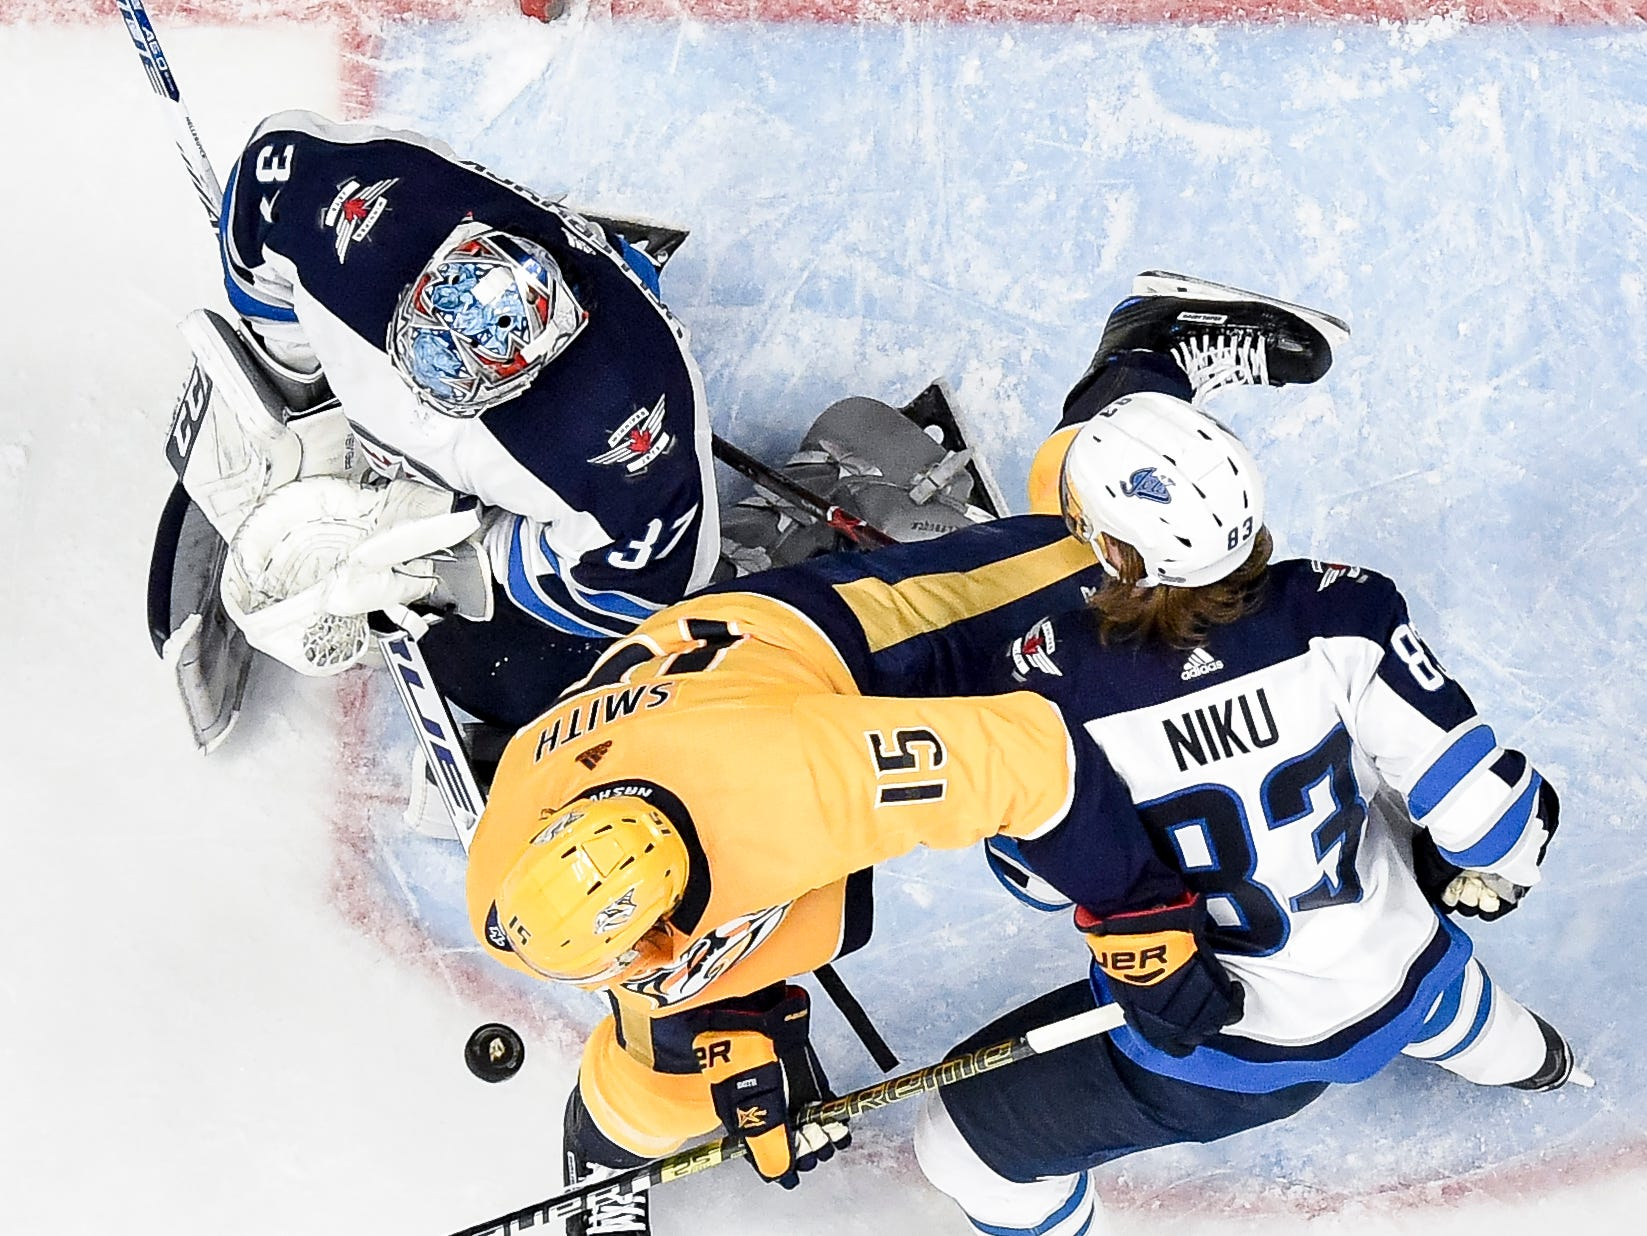 Nashville Predators right wing Craig Smith (15) battles Winnipeg Jets goaltender Connor Hellebuyck (37) and defenseman Sami Niku (83) during the second period at Bridgestone Arena in Nashville, Tenn., Thursday, Jan. 17, 2019.